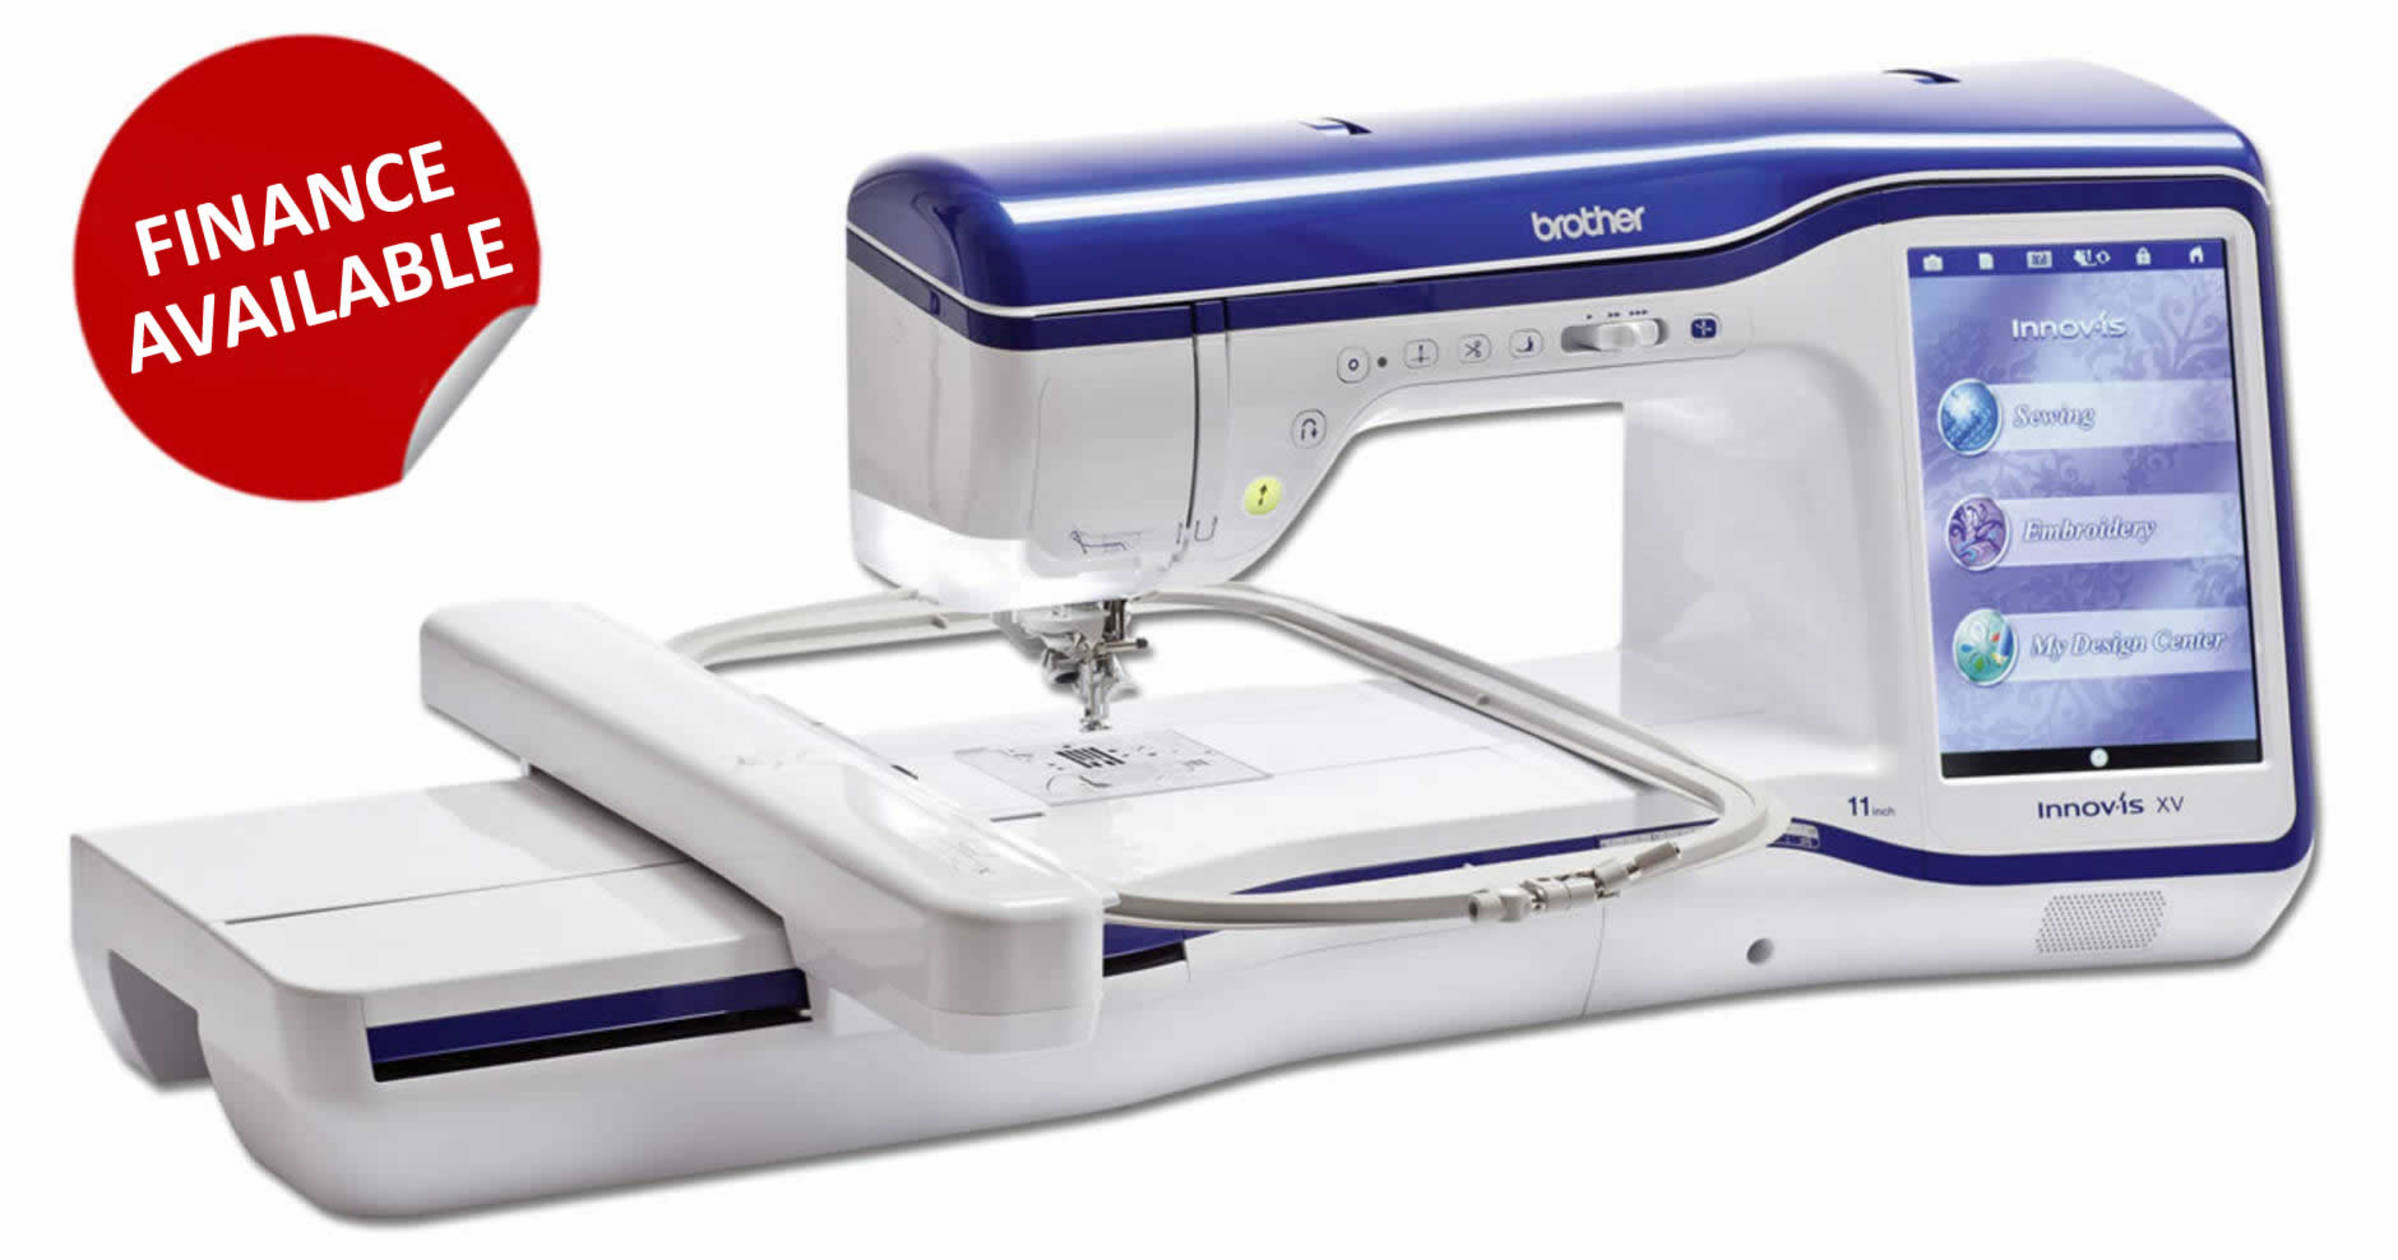 Embroidery Sewing Machine Fresh Brother Innovis Xv Sewing & Embroidery Machine Of Wonderful 40 Images Embroidery Sewing Machine